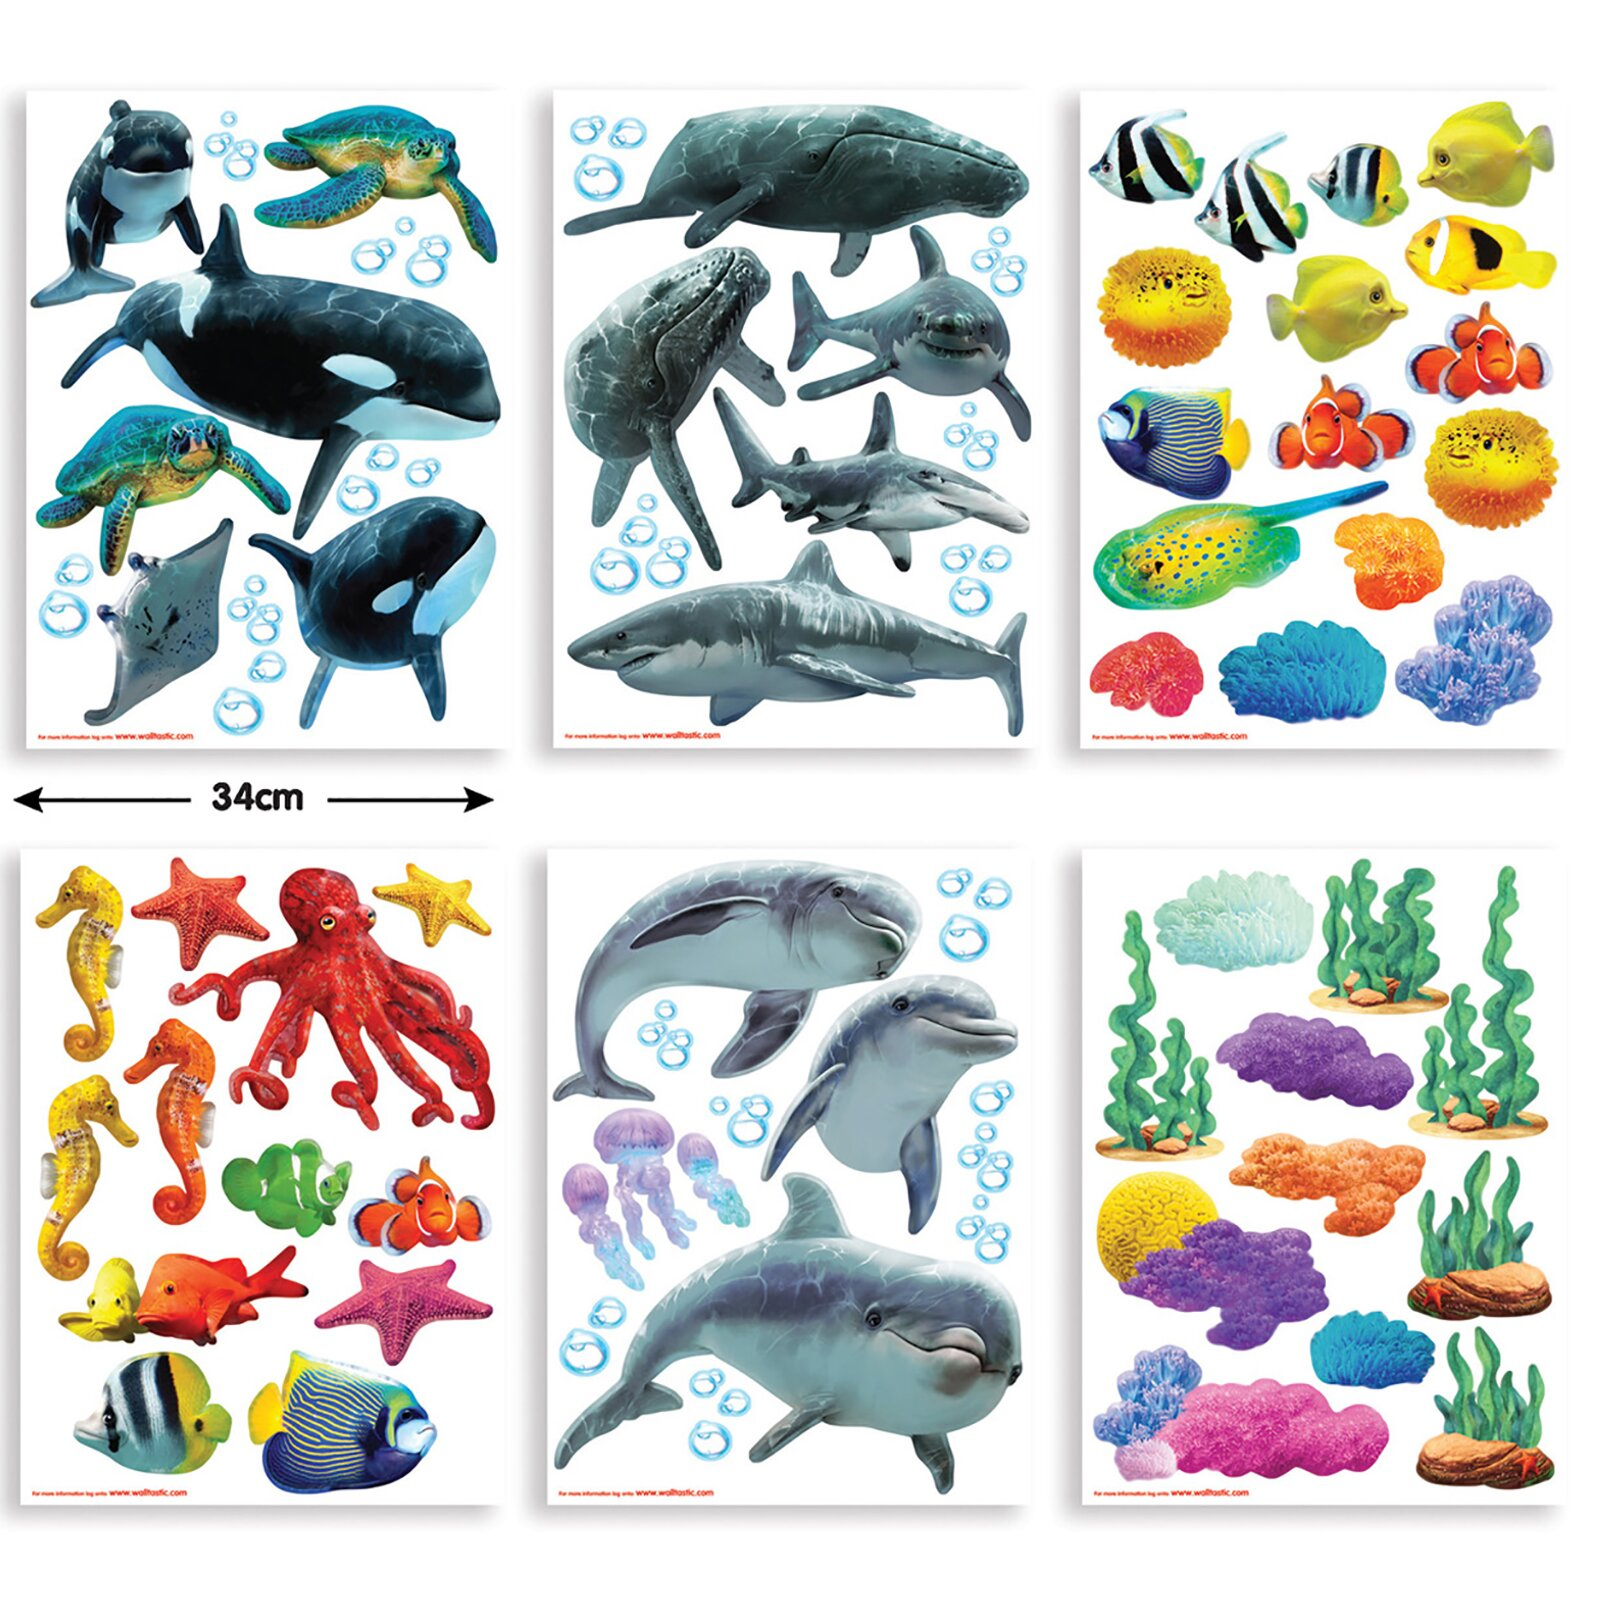 Wall Art Stickers Next Day Delivery : Wallpops walltastic wall art sea adventure decal